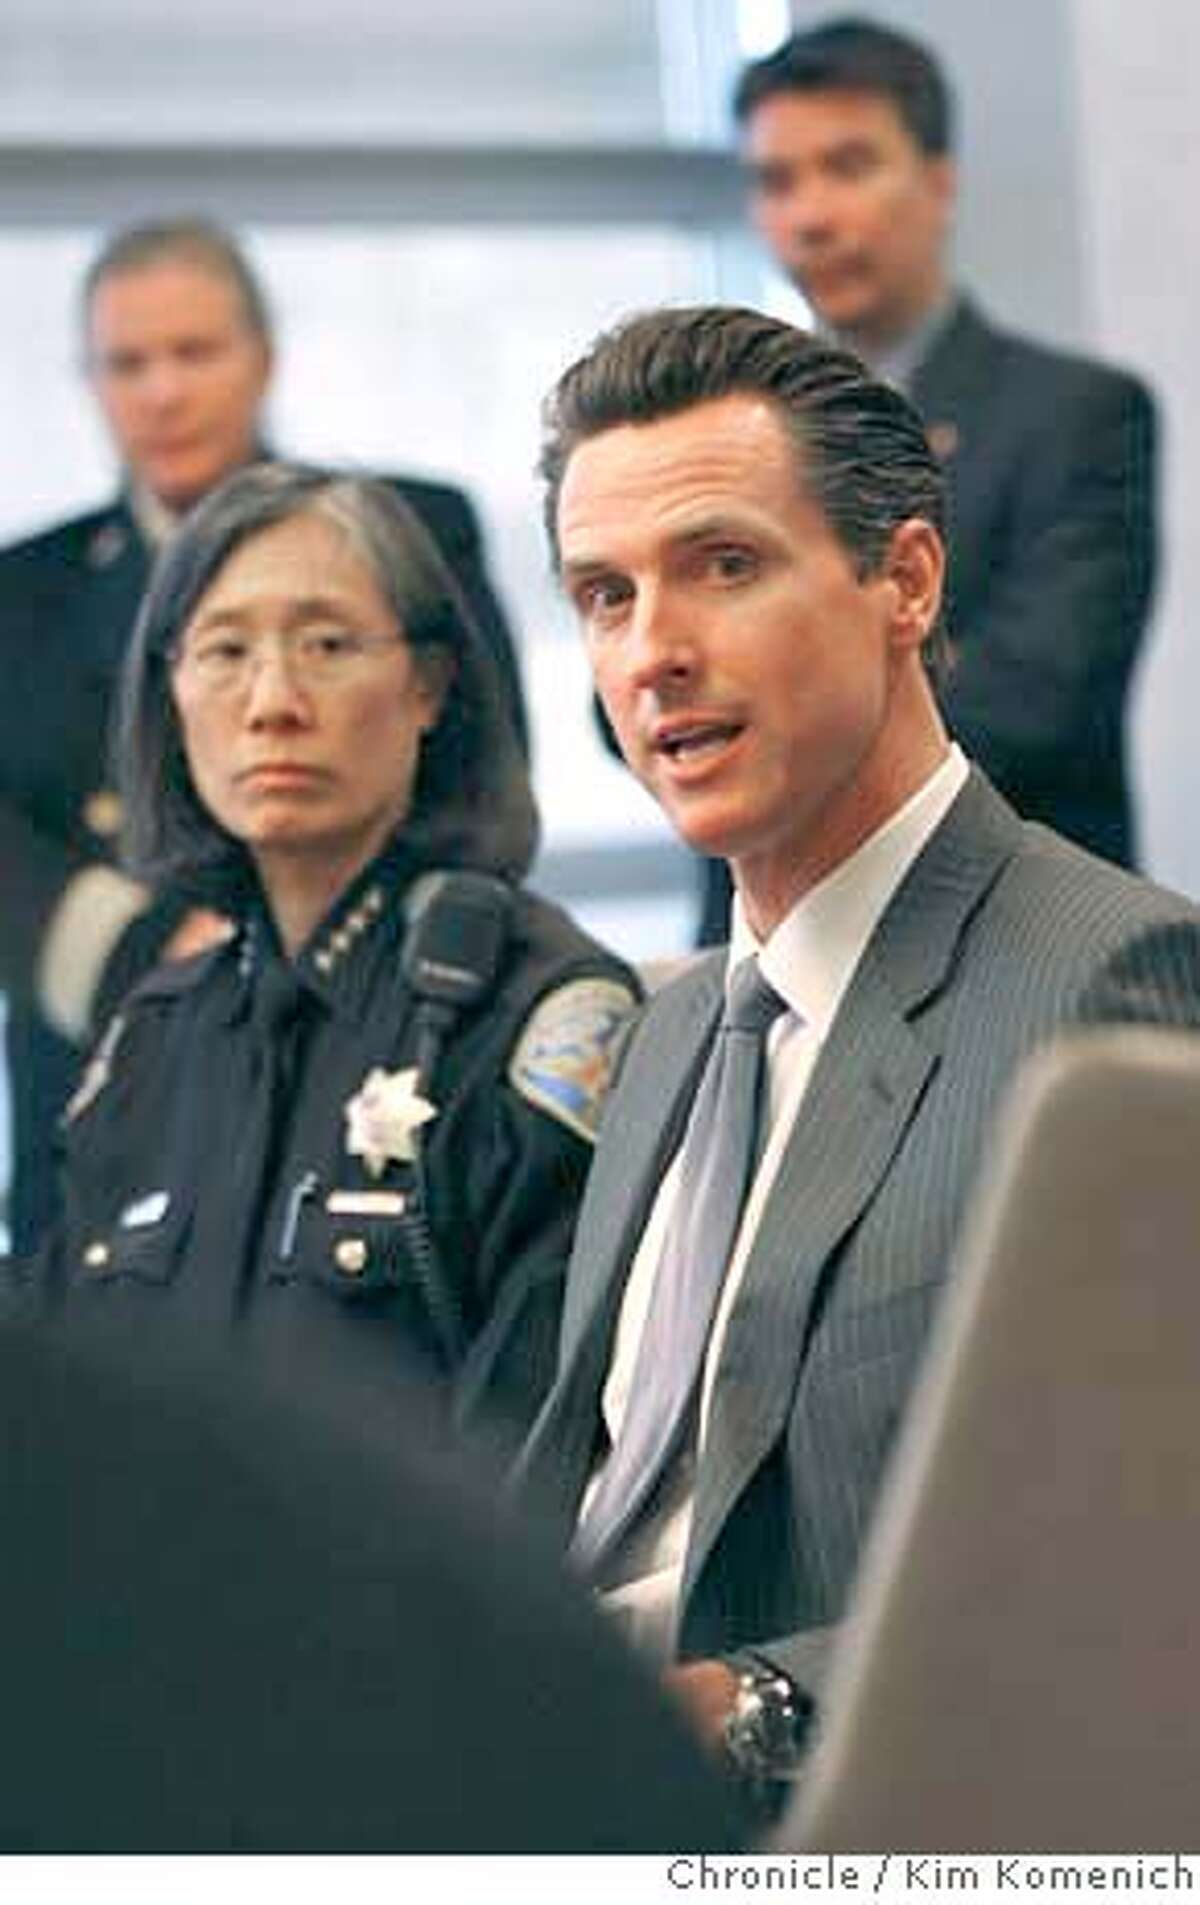 ###Live Caption:San Francisco Polic Chief Heather Fong, left, and Mayor Gavin Newsom explain their decisions regarding the Olympic Torch Relay at a press conference at San Francisco International Airport on Wednesday, April 9, 2008 Photo by Kim Komenich / San Francisco Chronicle###Caption History:San Francisco Polic Chief Heather Fong, left, and Mayor Gavin Newsom explain their decisions regarding the Olympic Torch Relay at a press conference at San Francisco International Airport on Wednesday, April 9, 2008 Photo by Kim Komenich / San Francisco Chronicle Ran on: 04-11-2008 Redirection: Mayor Gavin Newsom and Police Chief Heather Fong explain their decision to change the torch-relay route. Ran on: 04-11-2008 Ran on: 04-11-2008 Ran on: 04-17-2008 Gavin Newsom###Notes:###Special Instructions:MANDATORY CREDIT FOR PHOTOG AND SF CHRONICLE/NO SALES-MAGS OUT